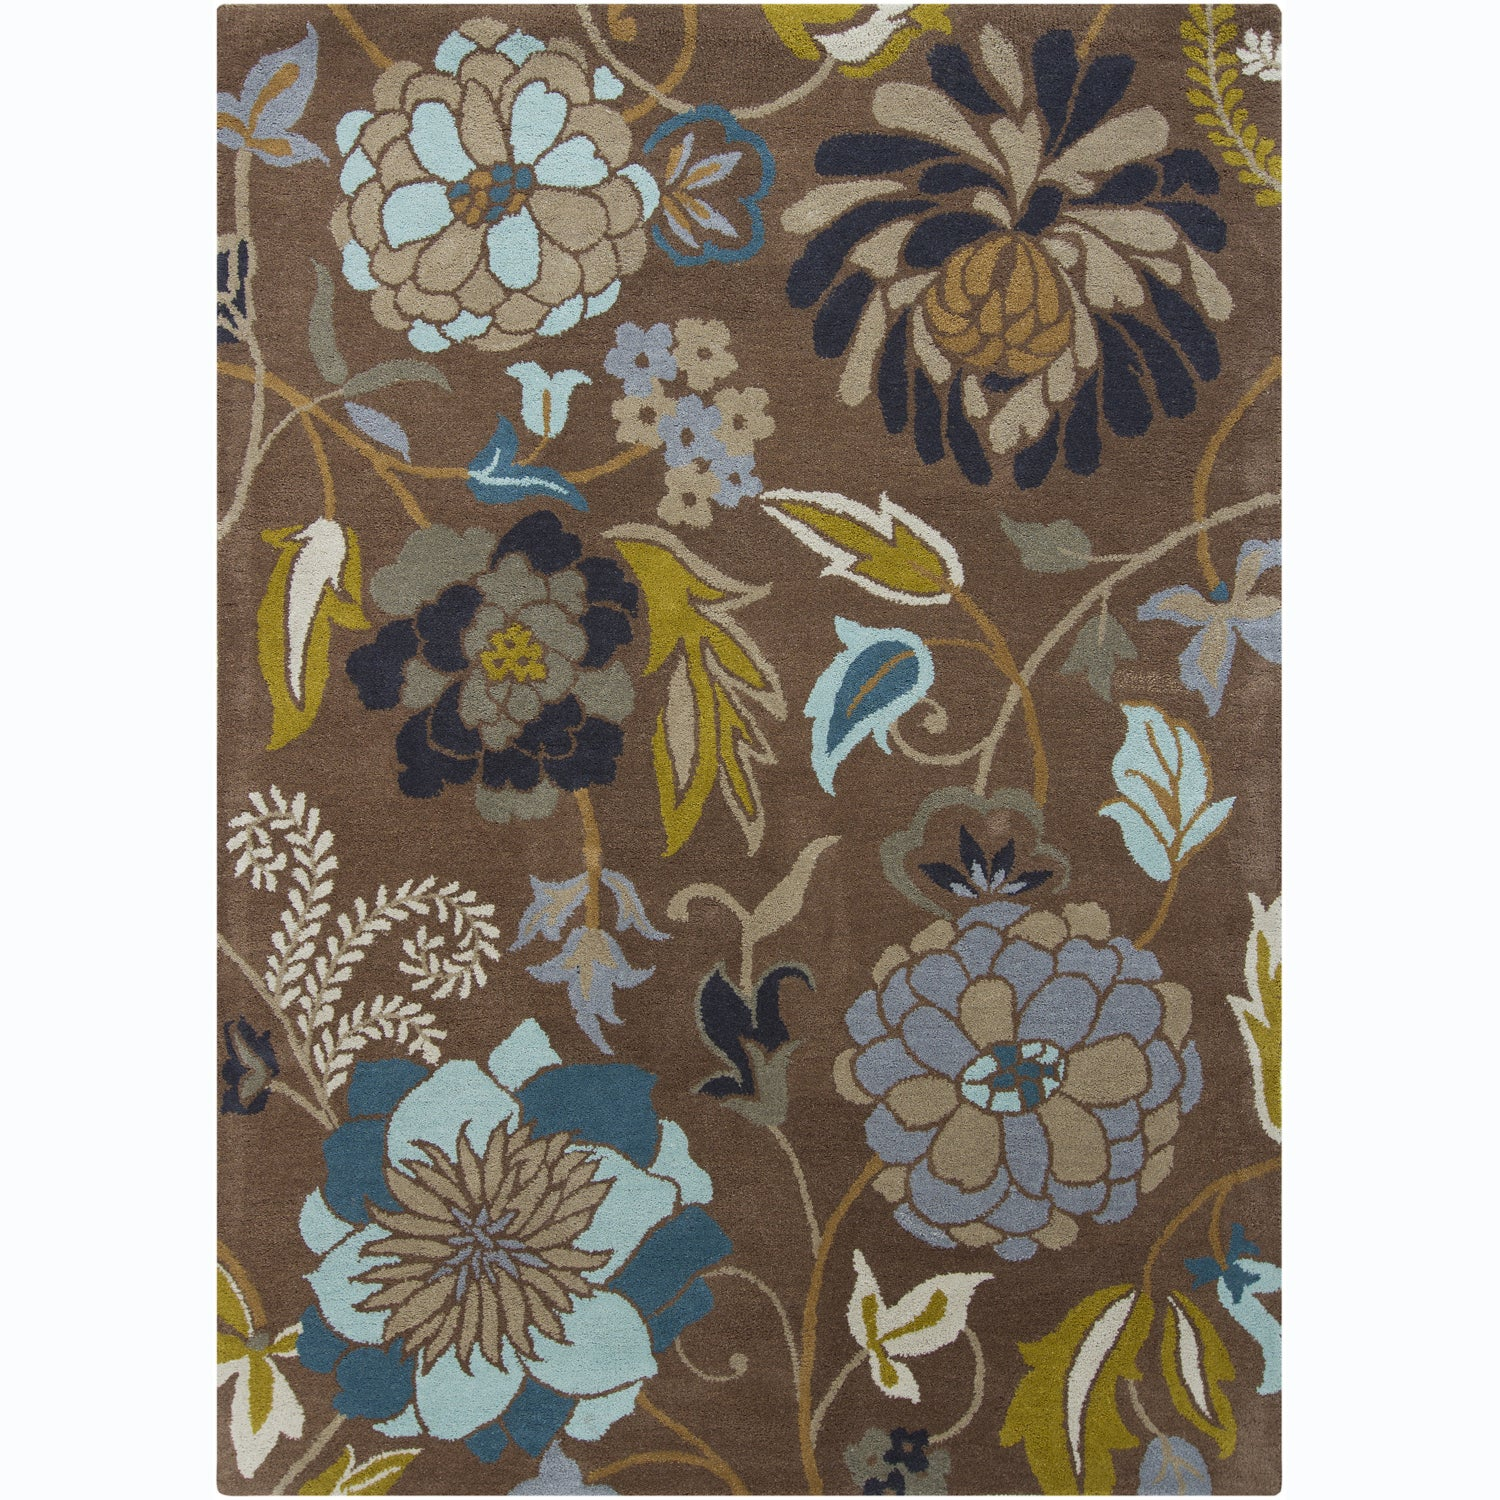 Woolrich Blue And White Floral Rug: Hand-Tufted Mani Brown/Blue Floral Wool Rug (7' X 10